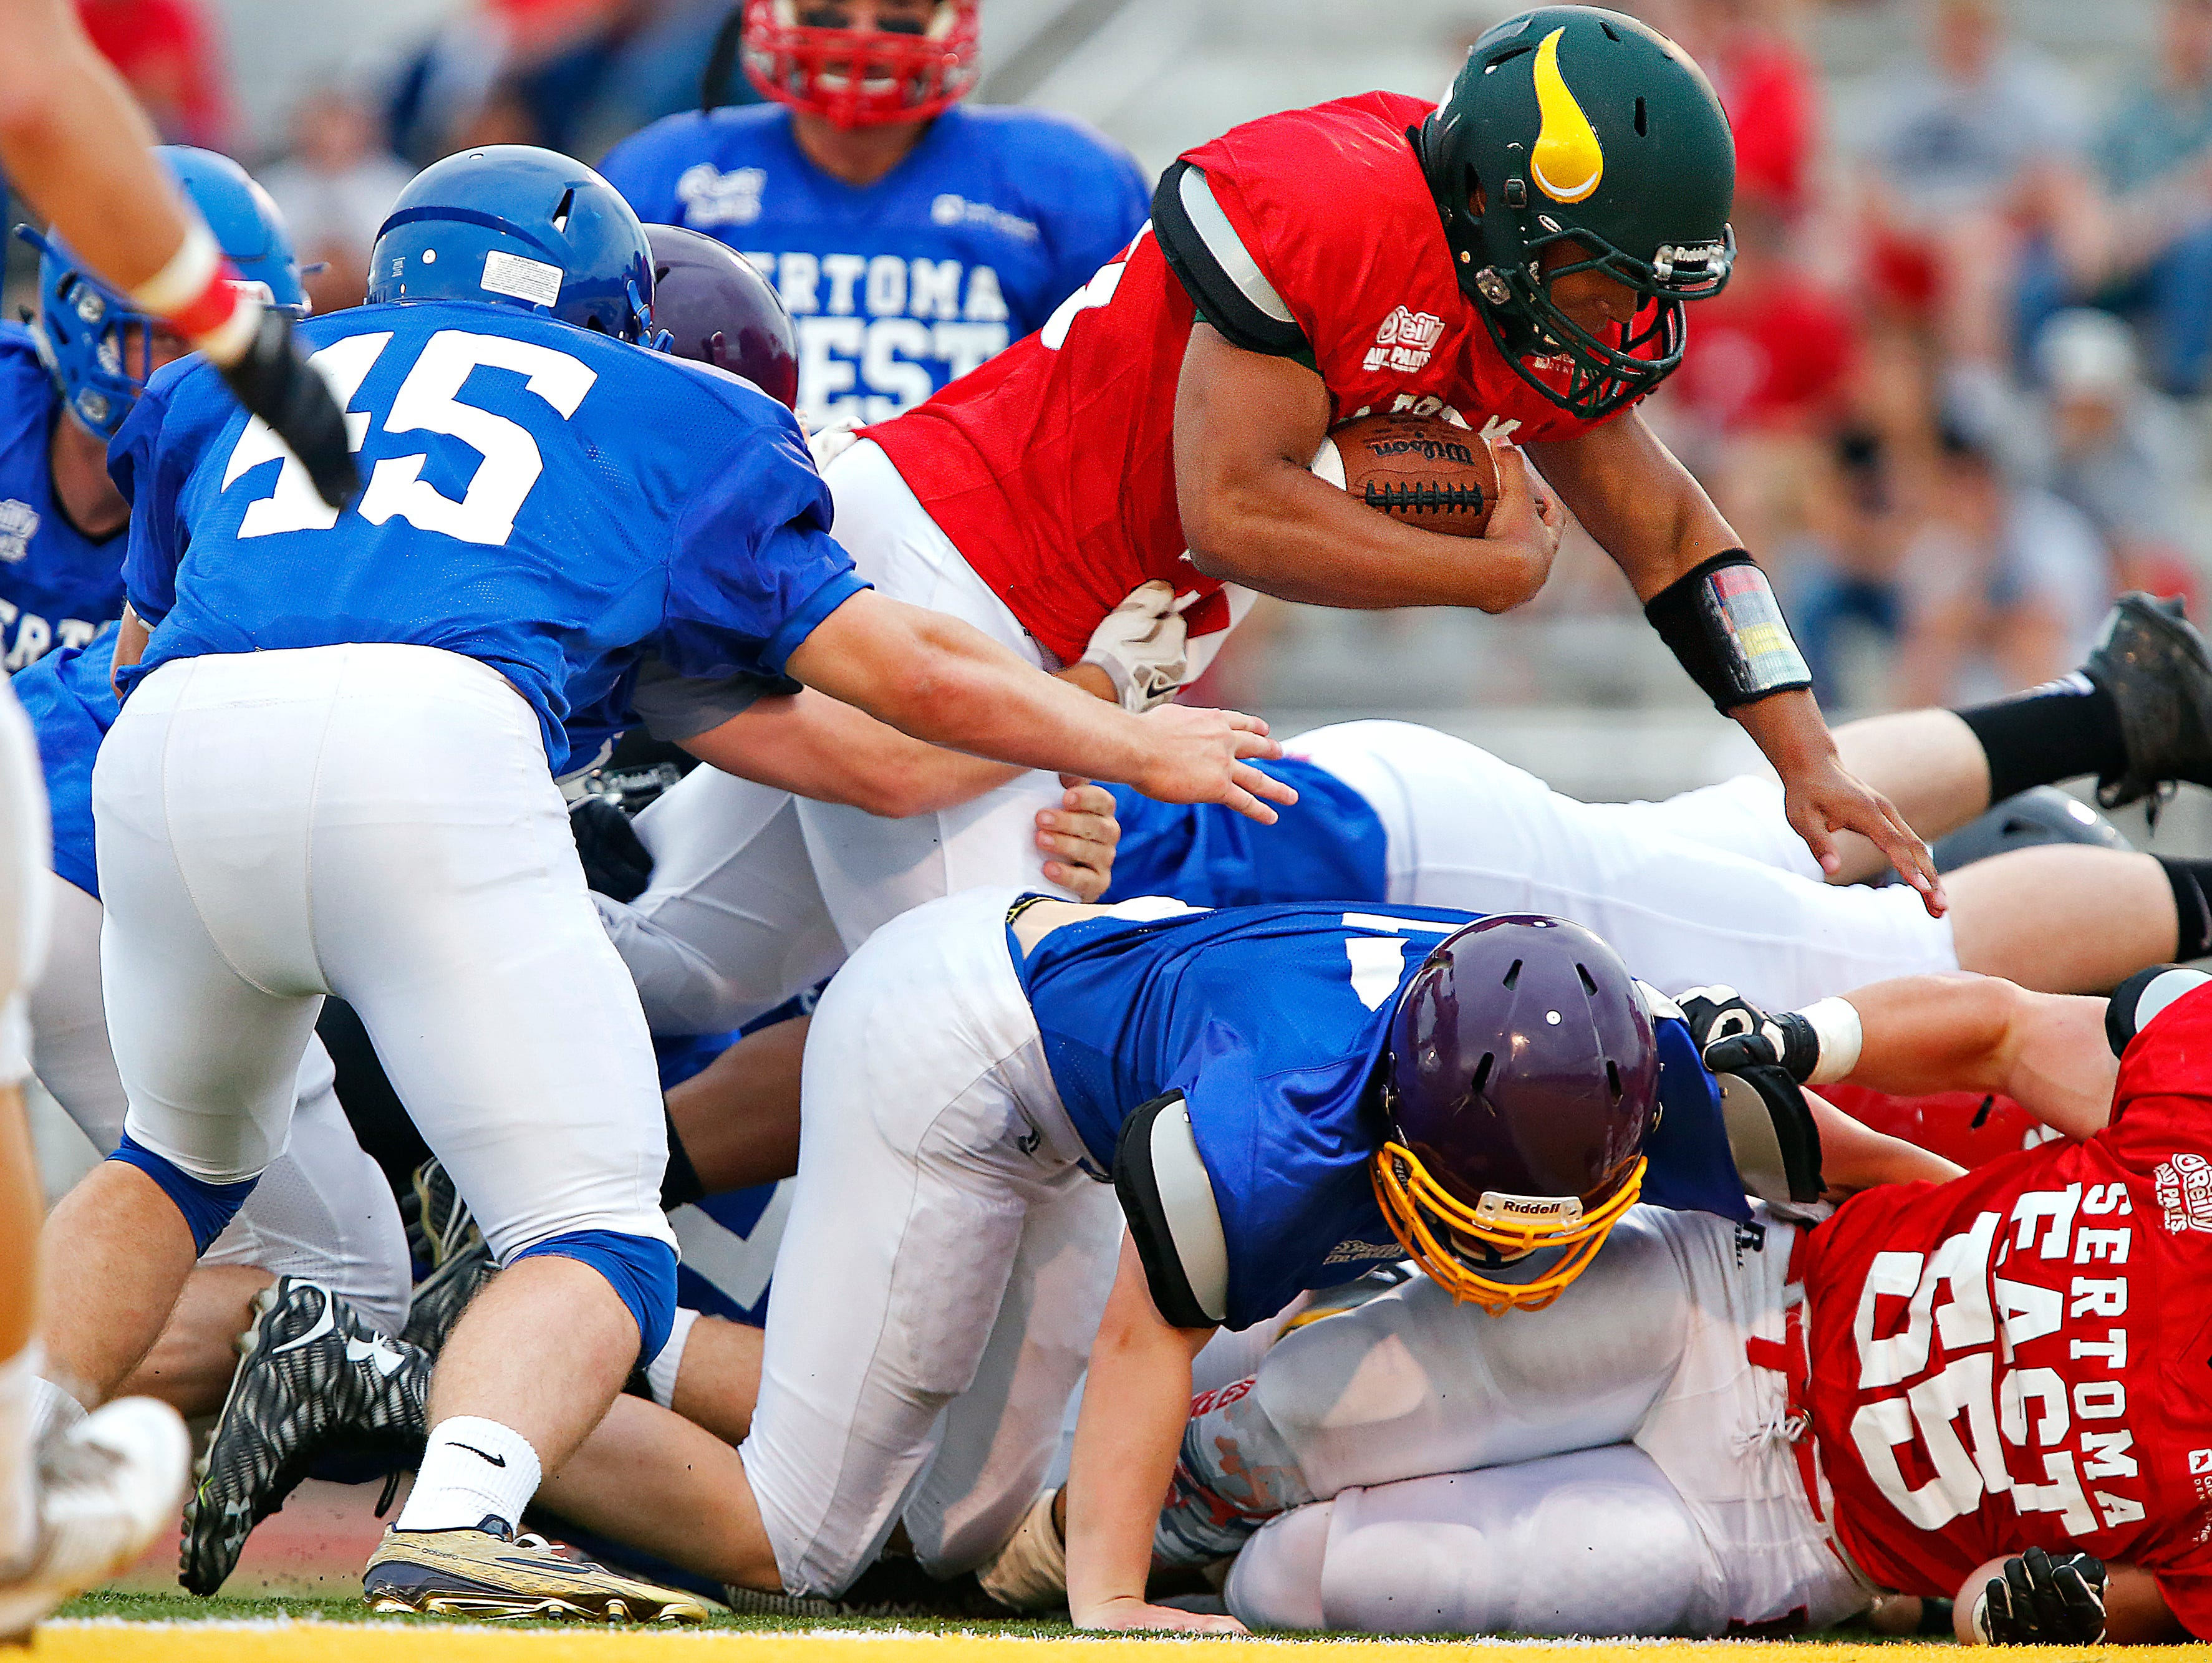 East All-Stars running back Anthony Riley (33) leaps over a defender to score a touchdown during first quarter action of the Sertoma Grin Iron Classic football game held at JFK Stadium in Springfield, Mo. on June 3, 2016.